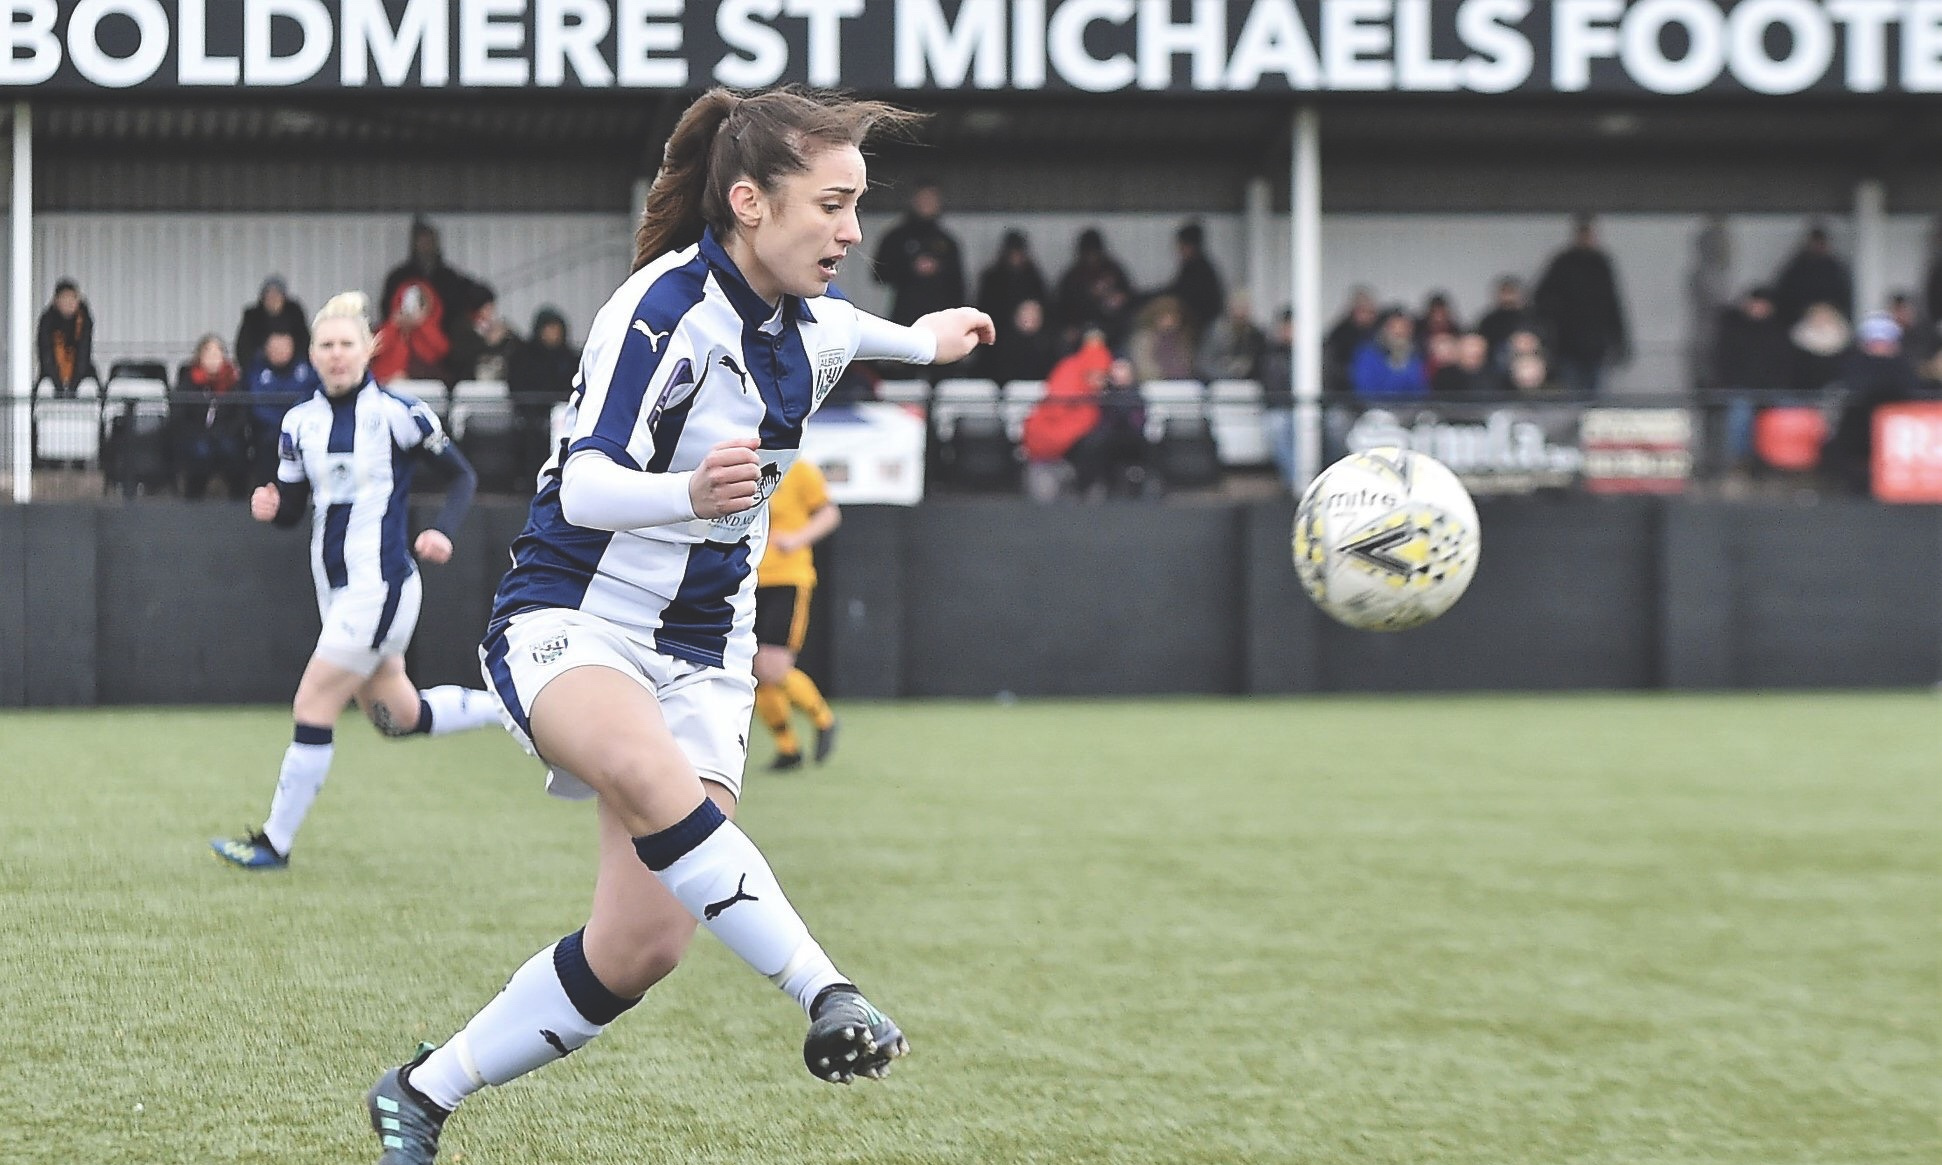 Fran Orthodoxou in action for West Bromwich Albion Women